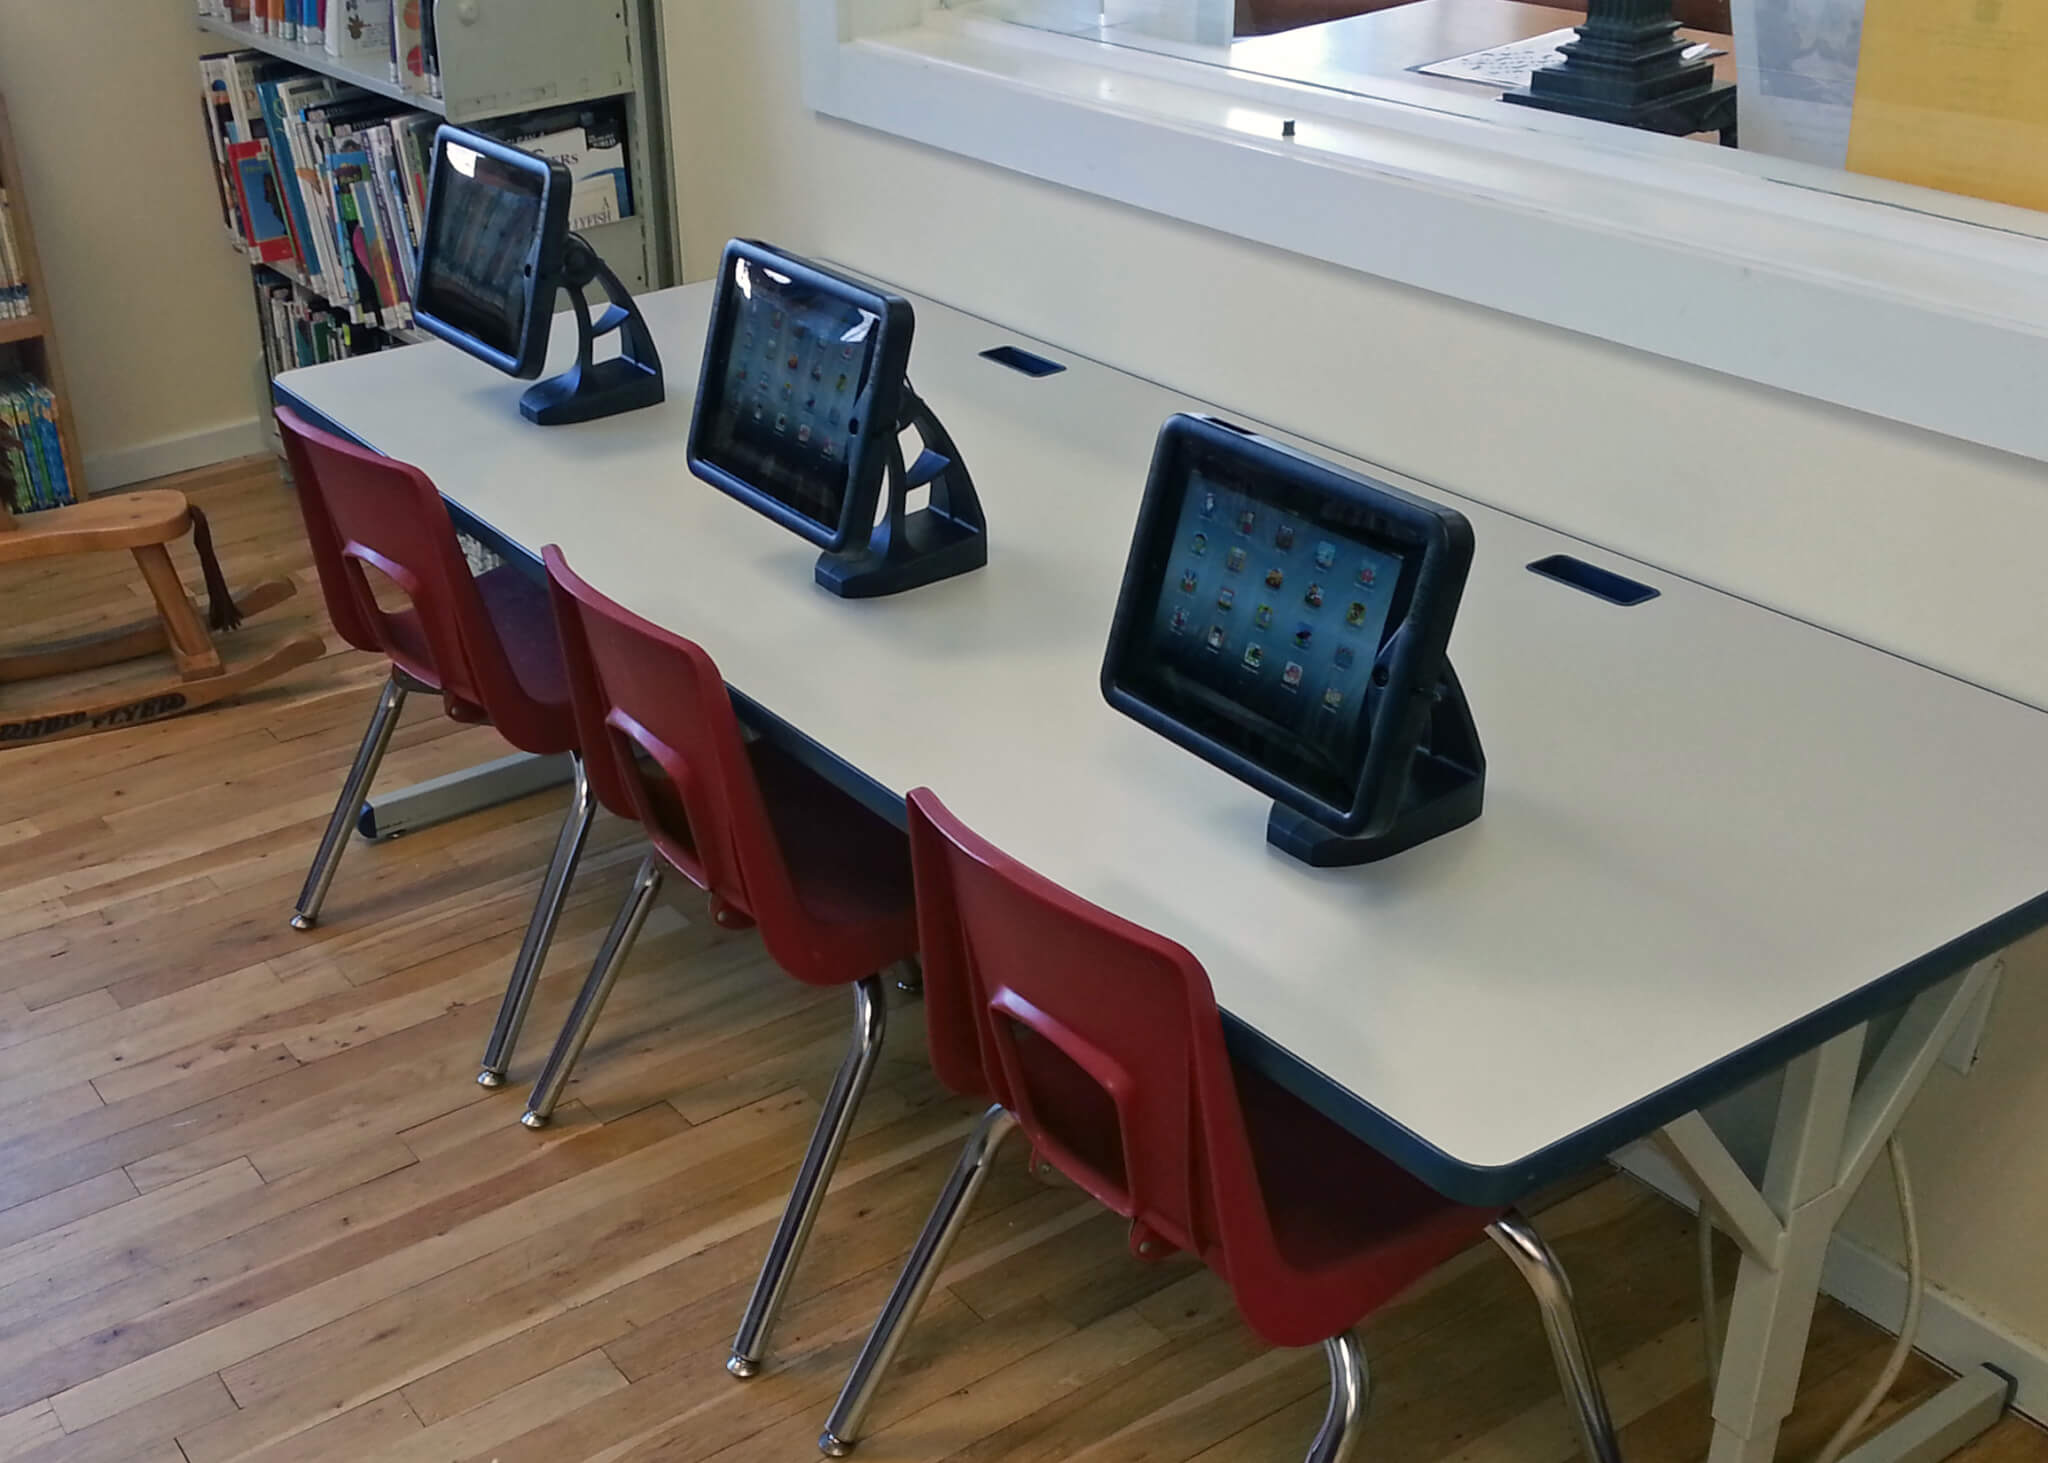 ipad table in children's area